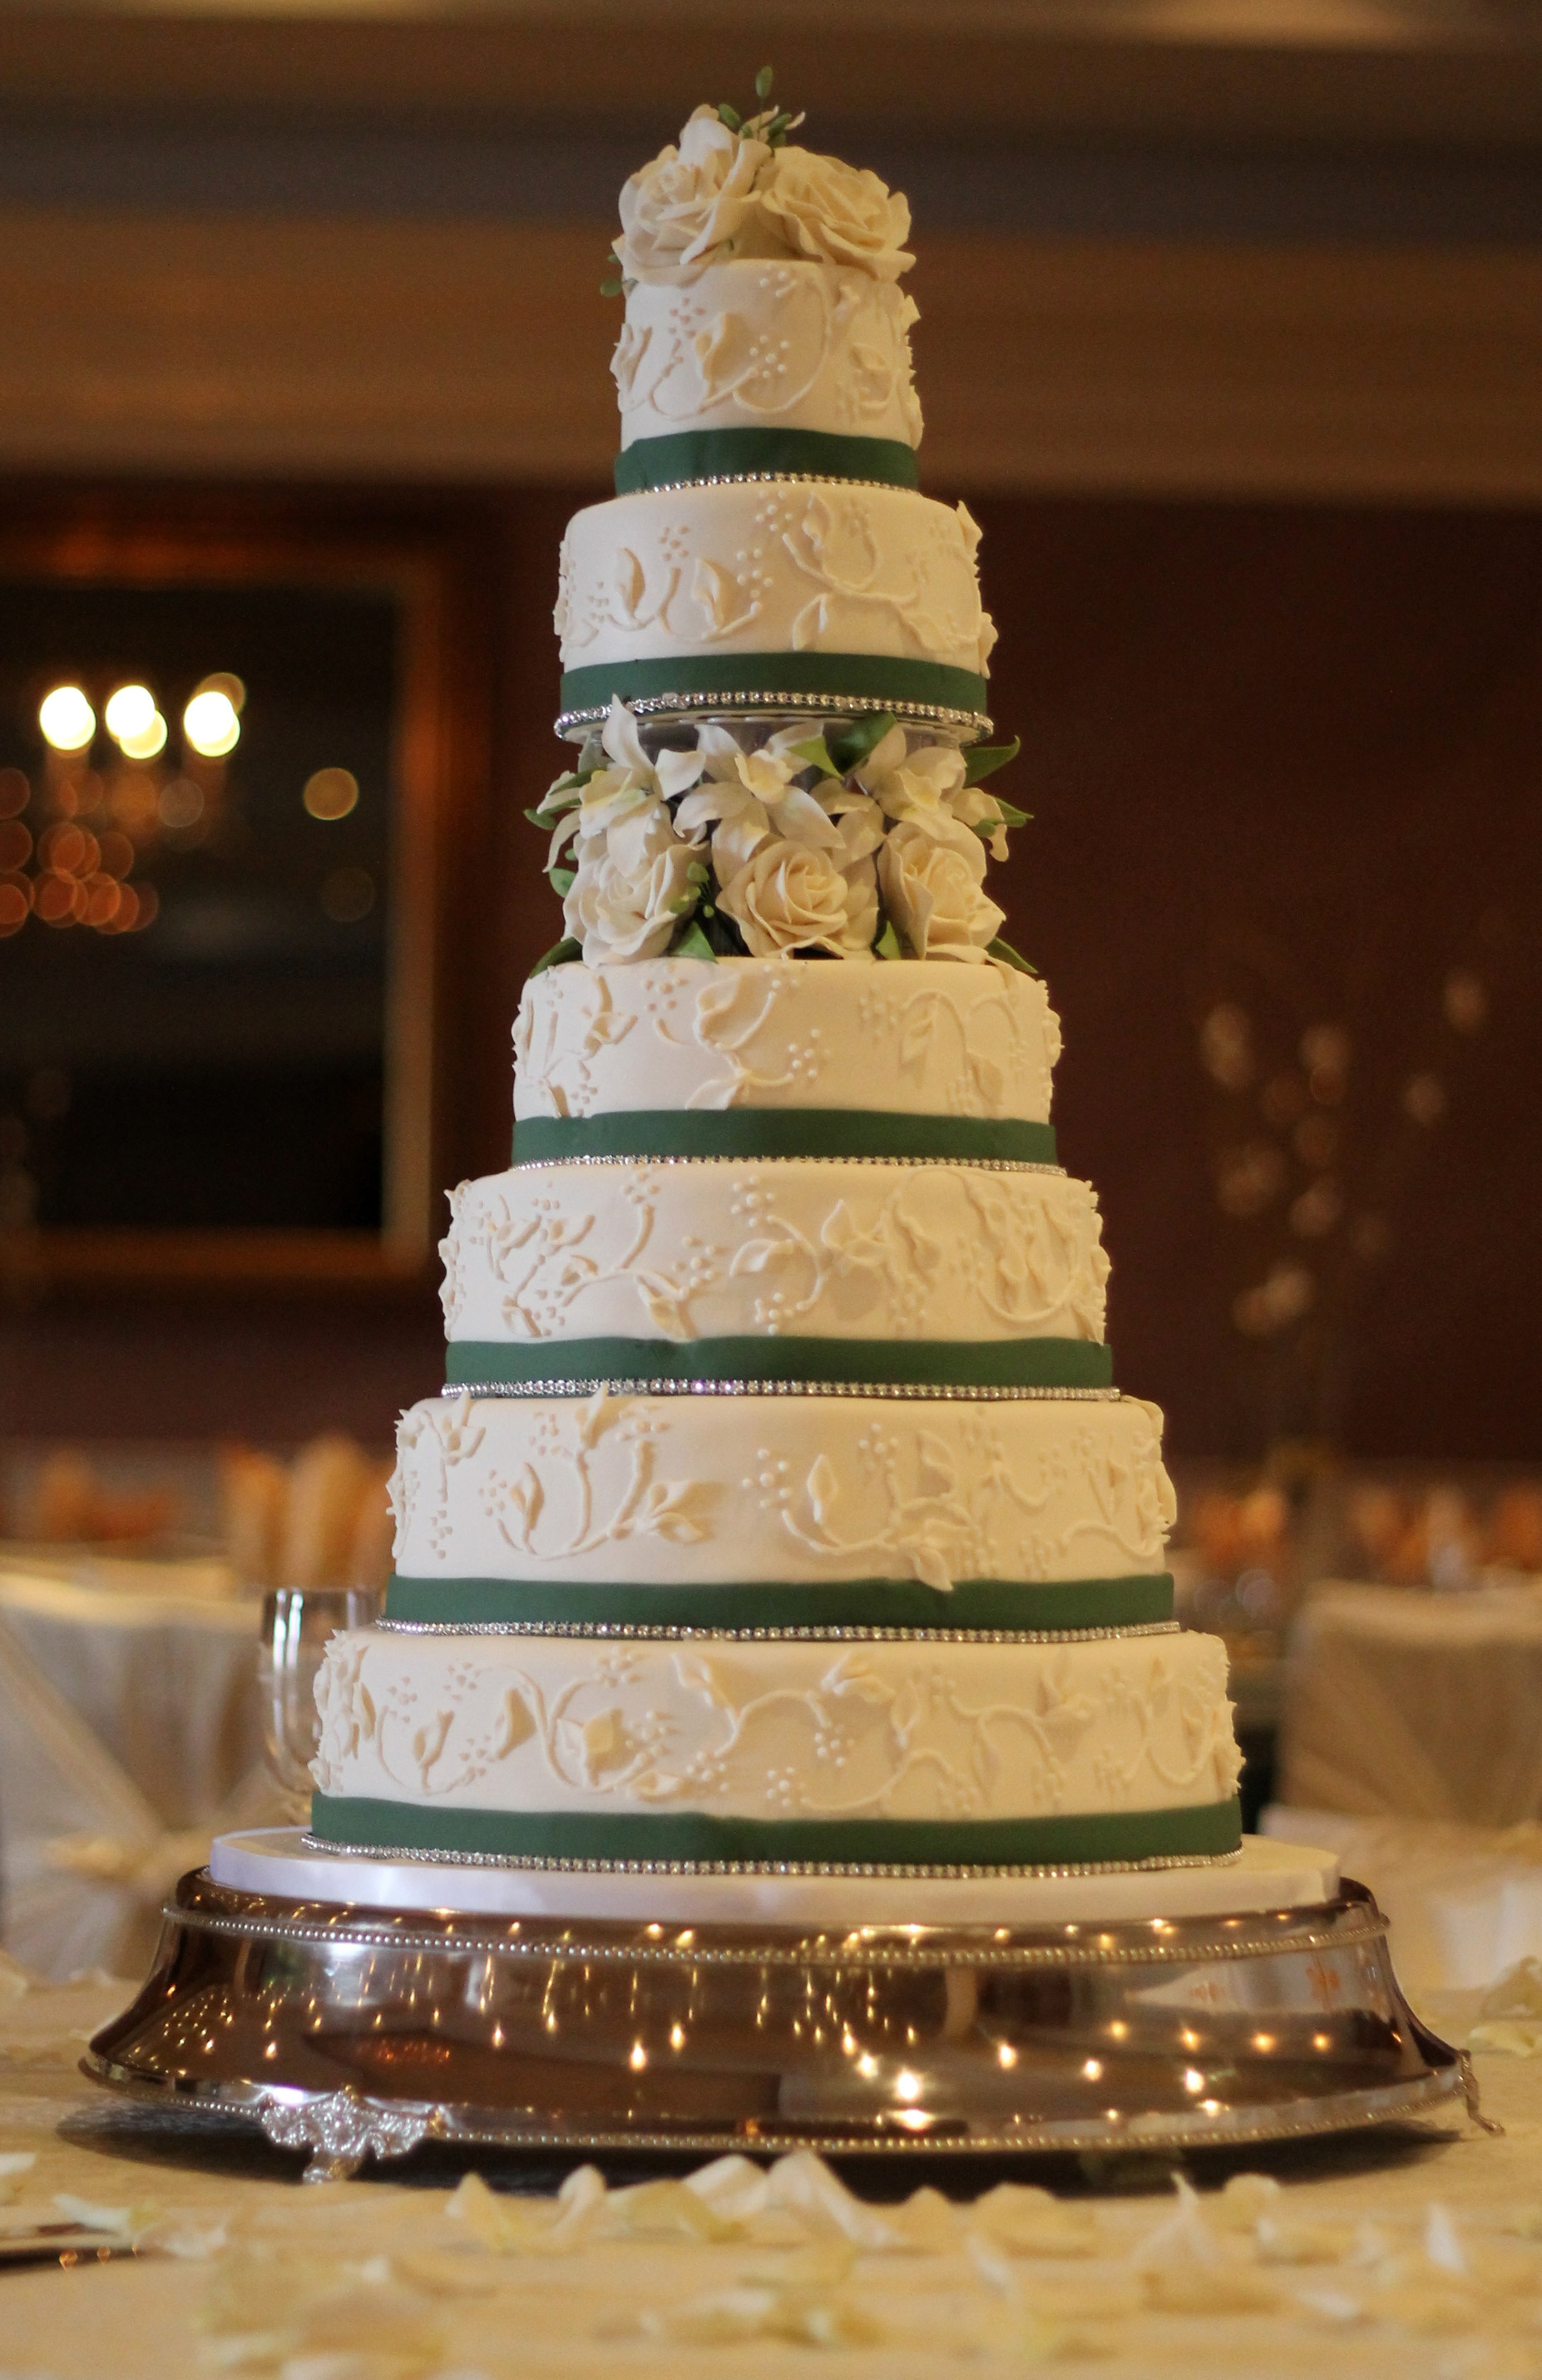 7 Tier Wedding Cakes  Seven Tier Green and White Floral Wedding Cake Diary of